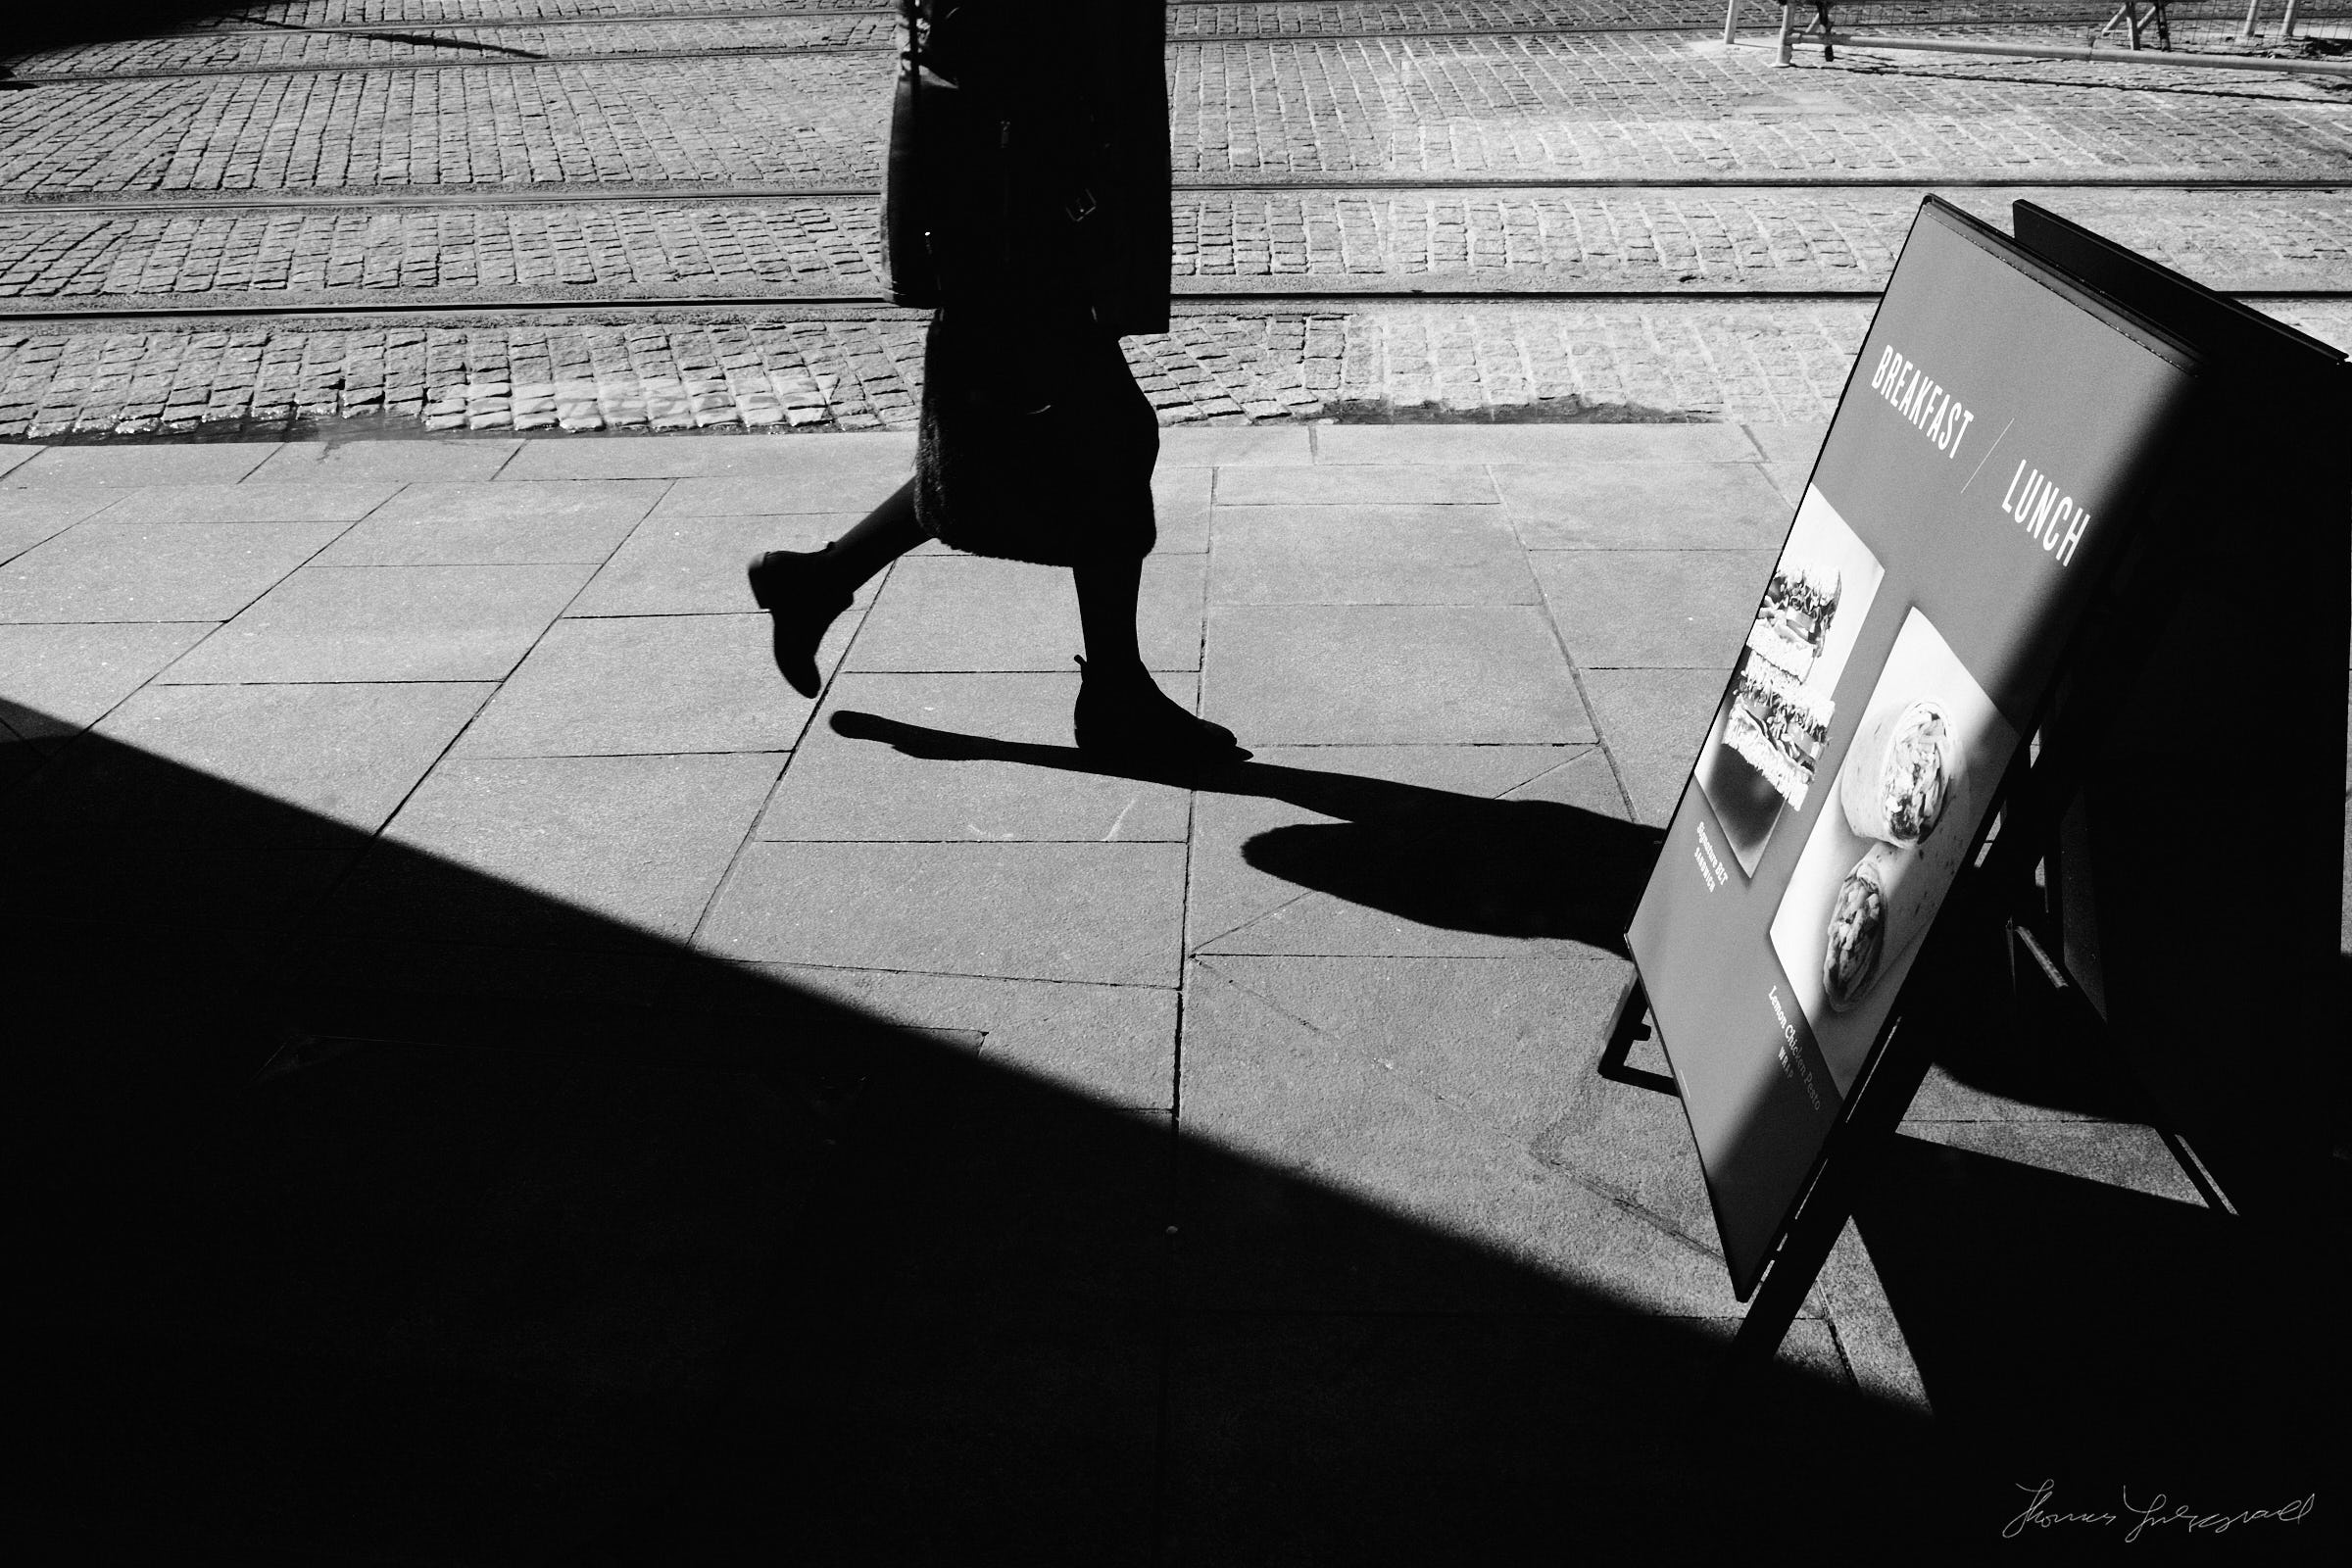 ShadowFeet_And_Street185.jpg